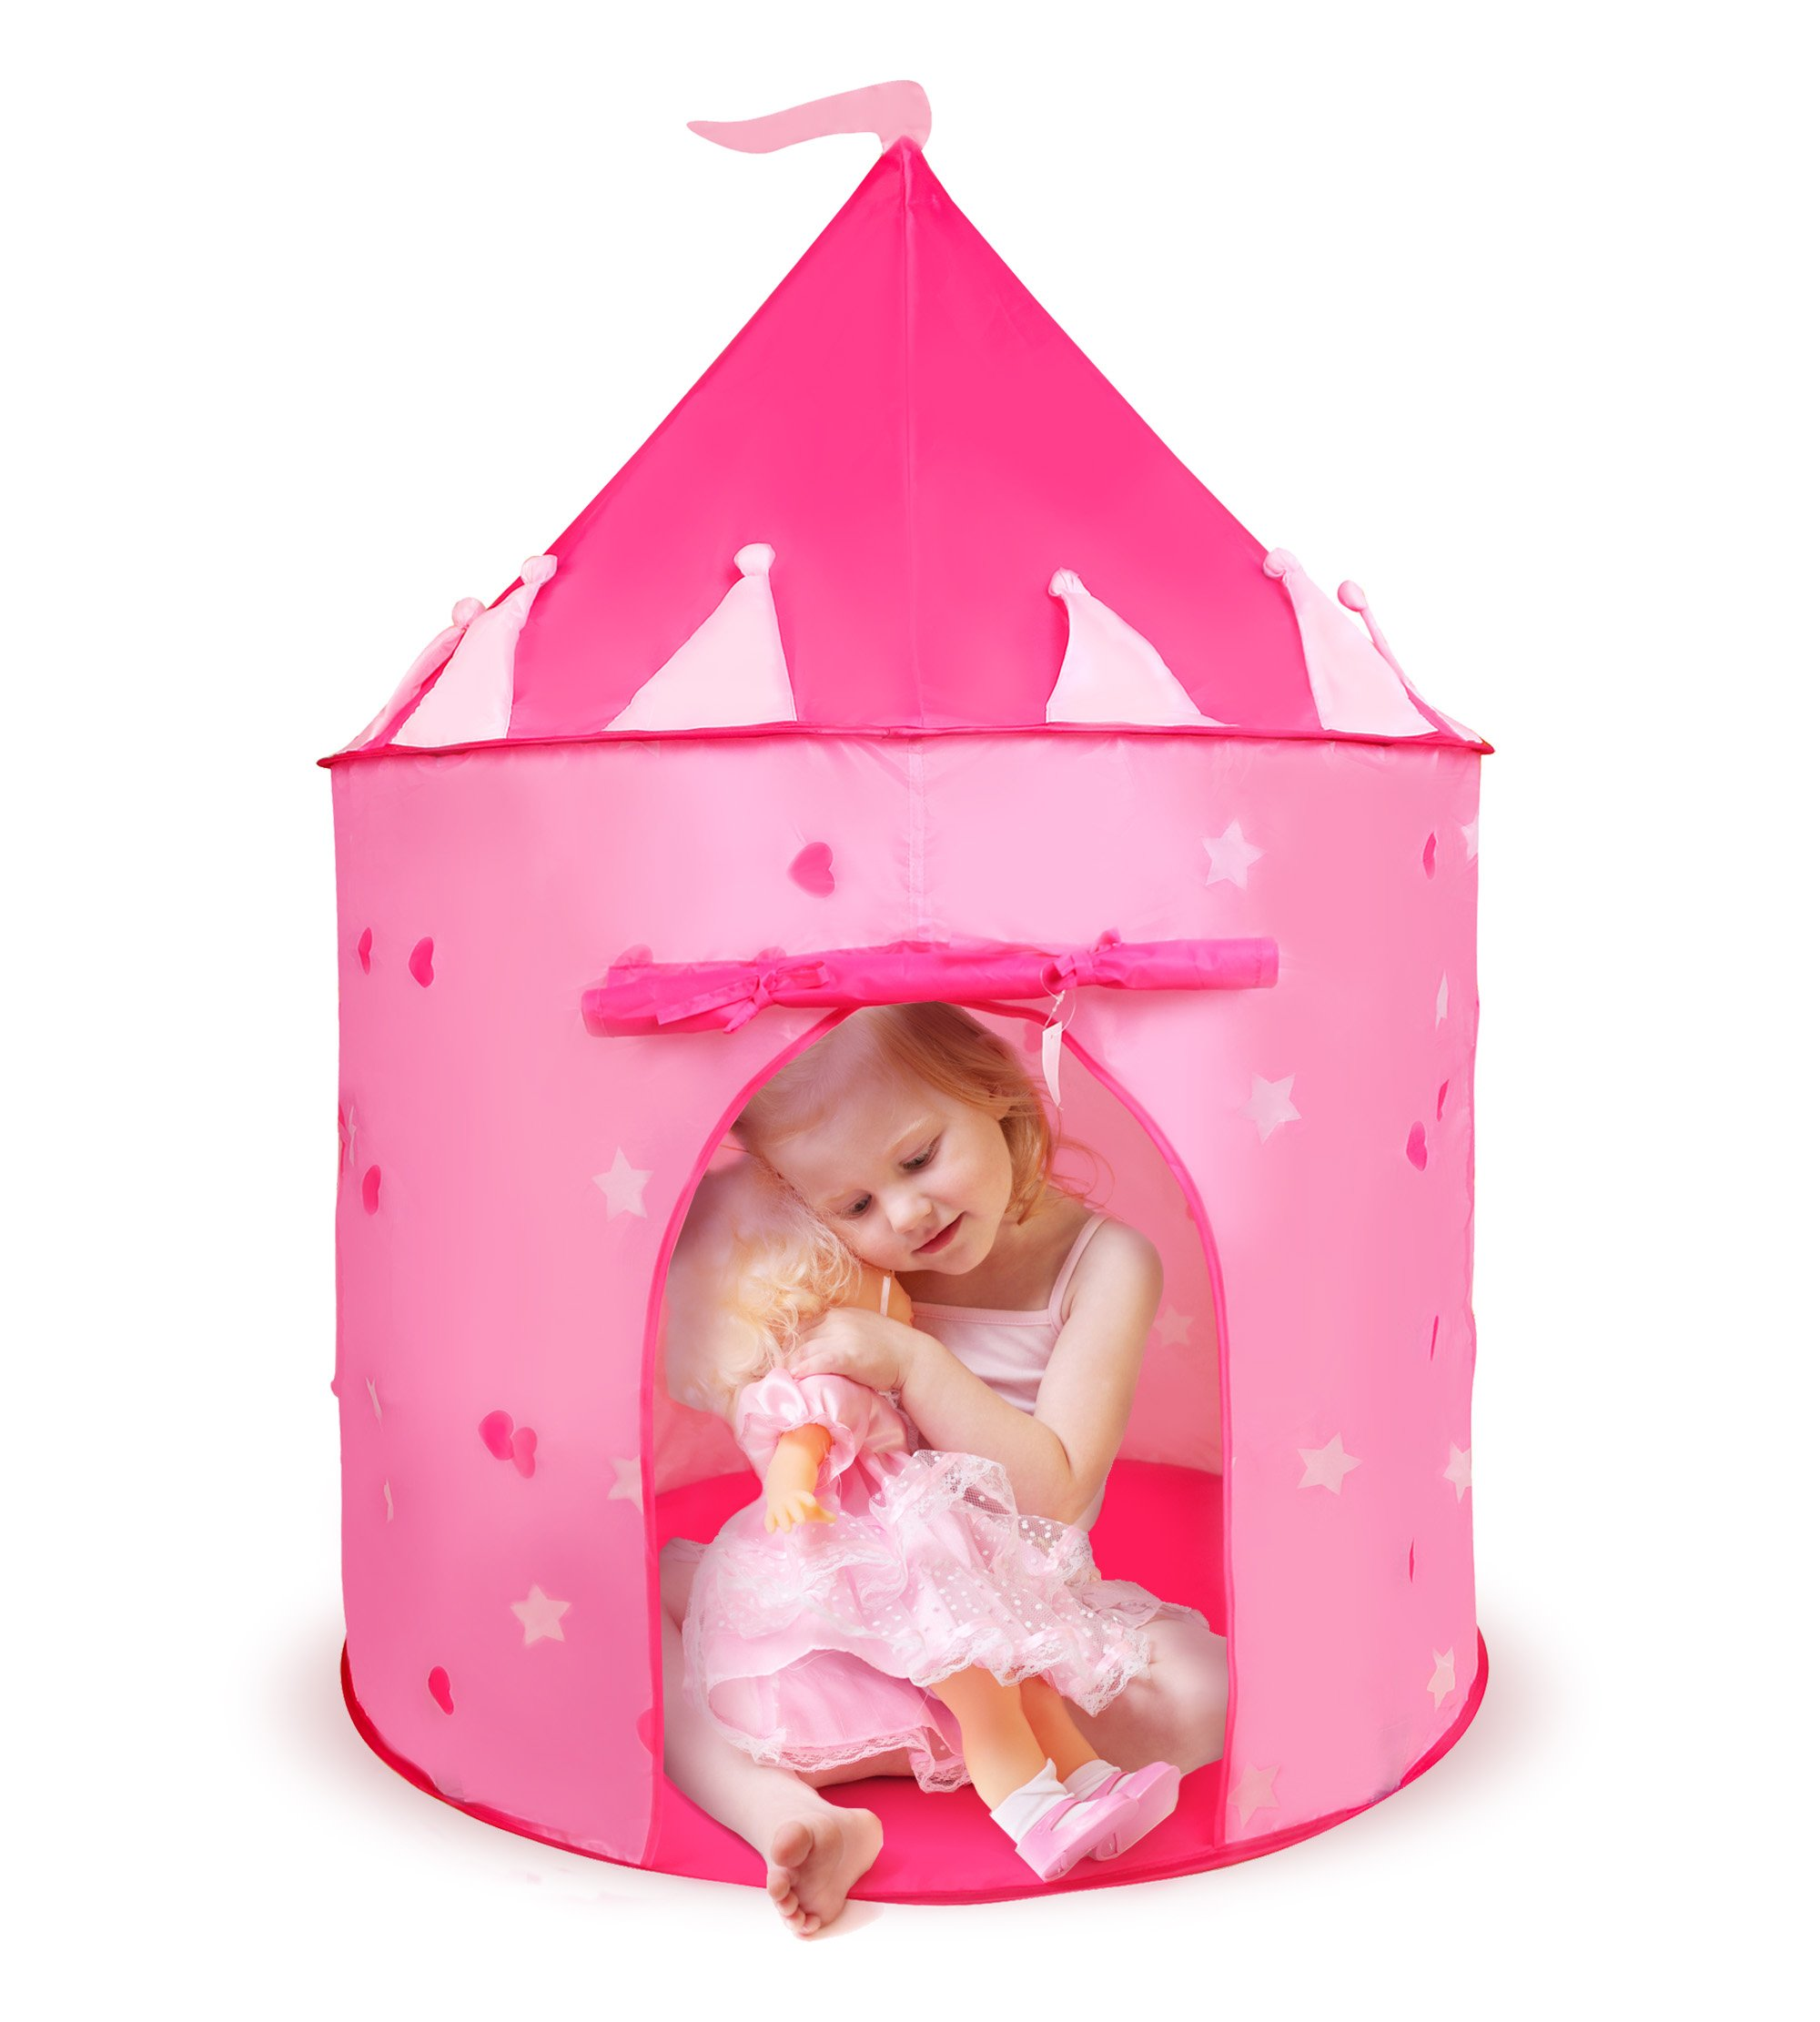 Boxiki kids Princess Castle Children's Tent | Pink Castle Tent with Glow in the Dark Stars | Fairy Houses for Kids | Glow Castle Kid's Play Tent for Sleepovers, Playdates & Travel